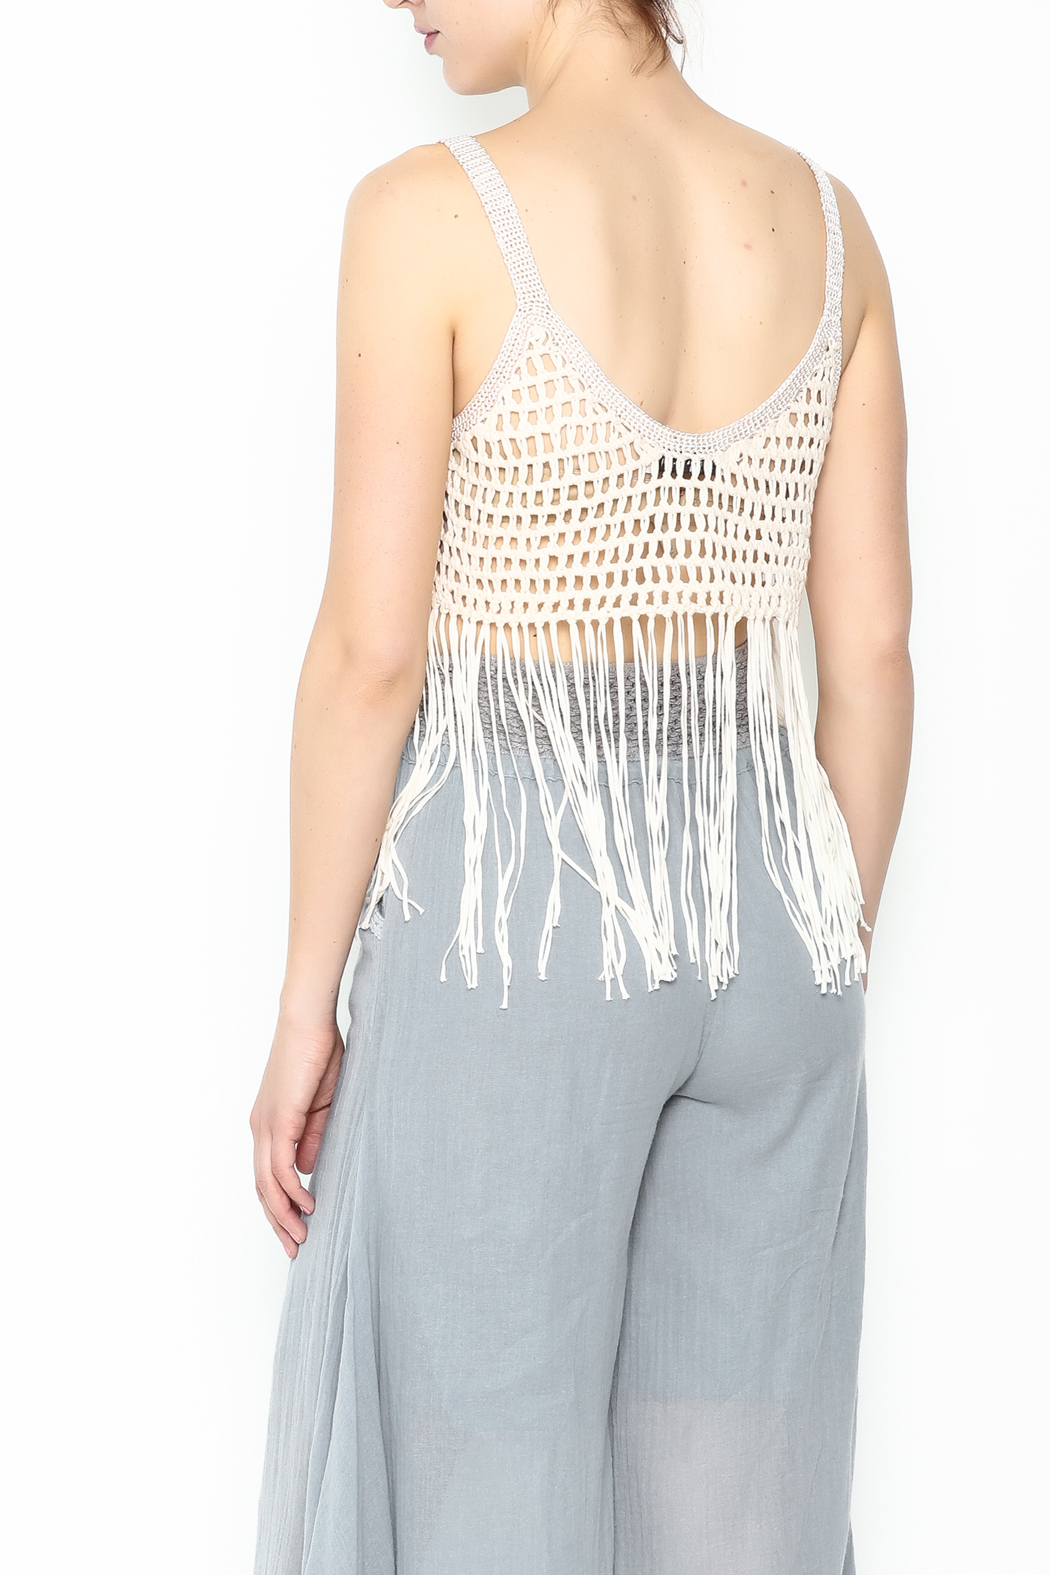 Yumi Fringe Crop Top - Back Cropped Image